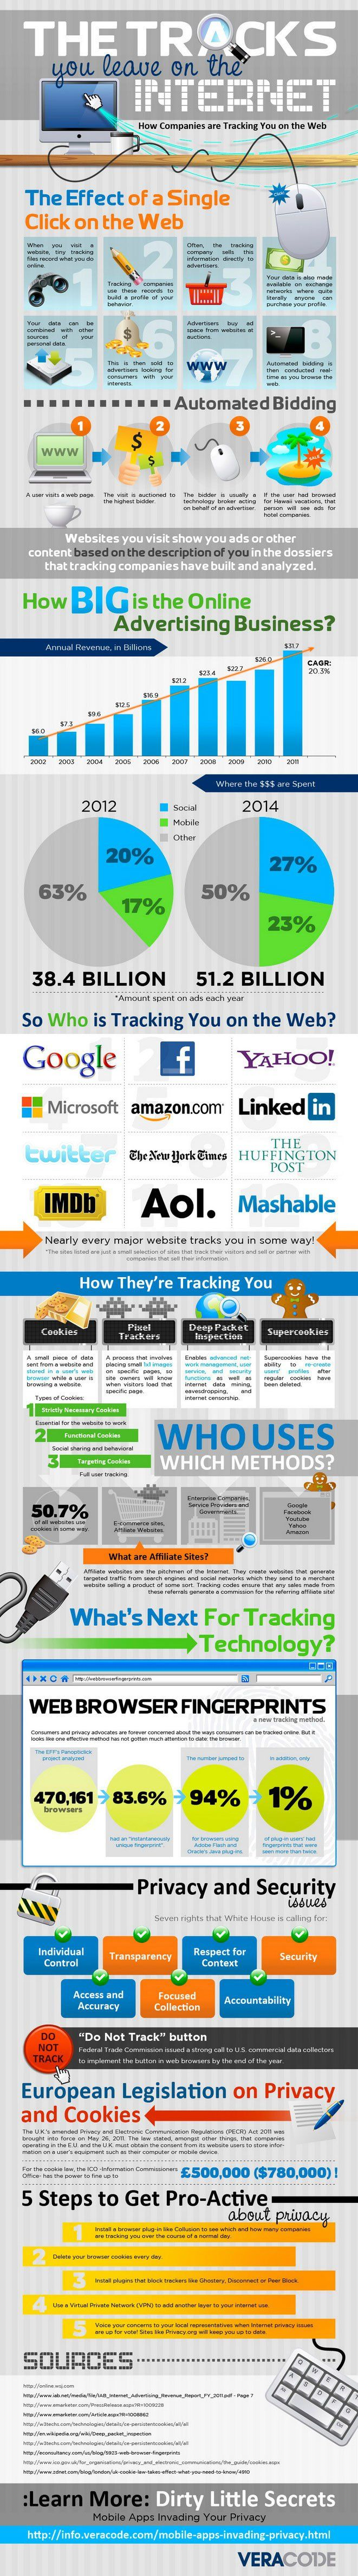 The Tracks You Leave On The Internet Infographic